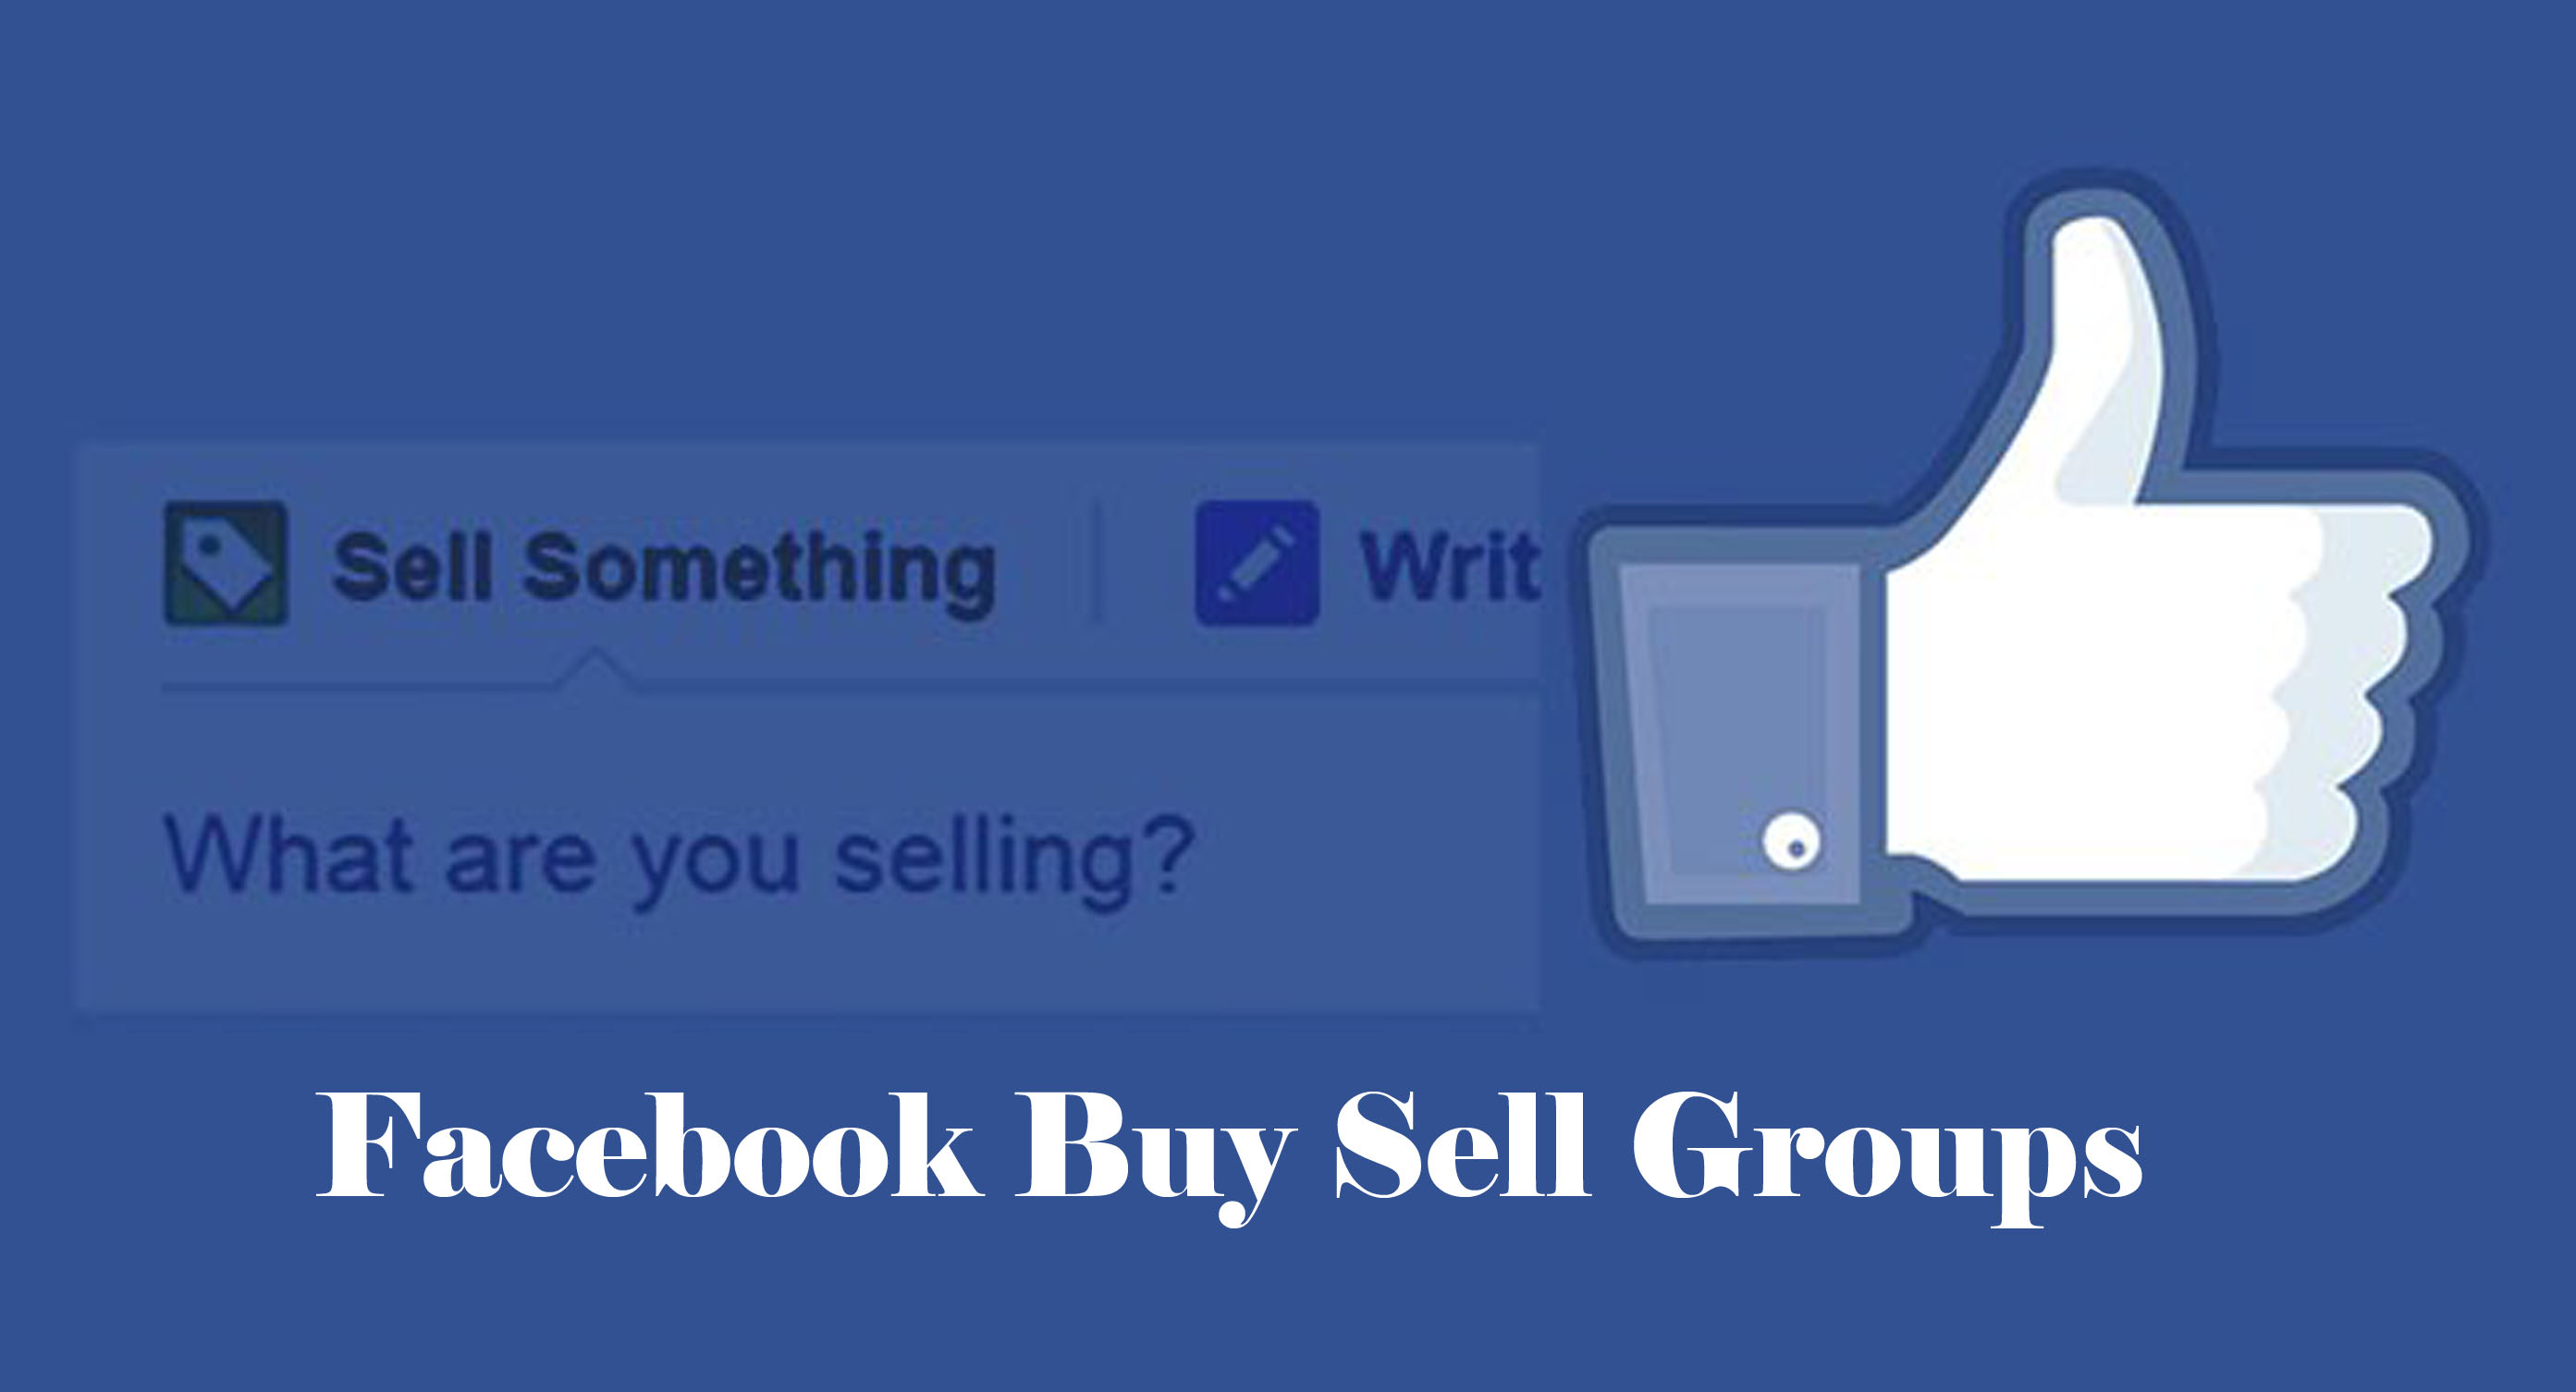 Facebook Buy Sell Groups - Facebook Trade Platform